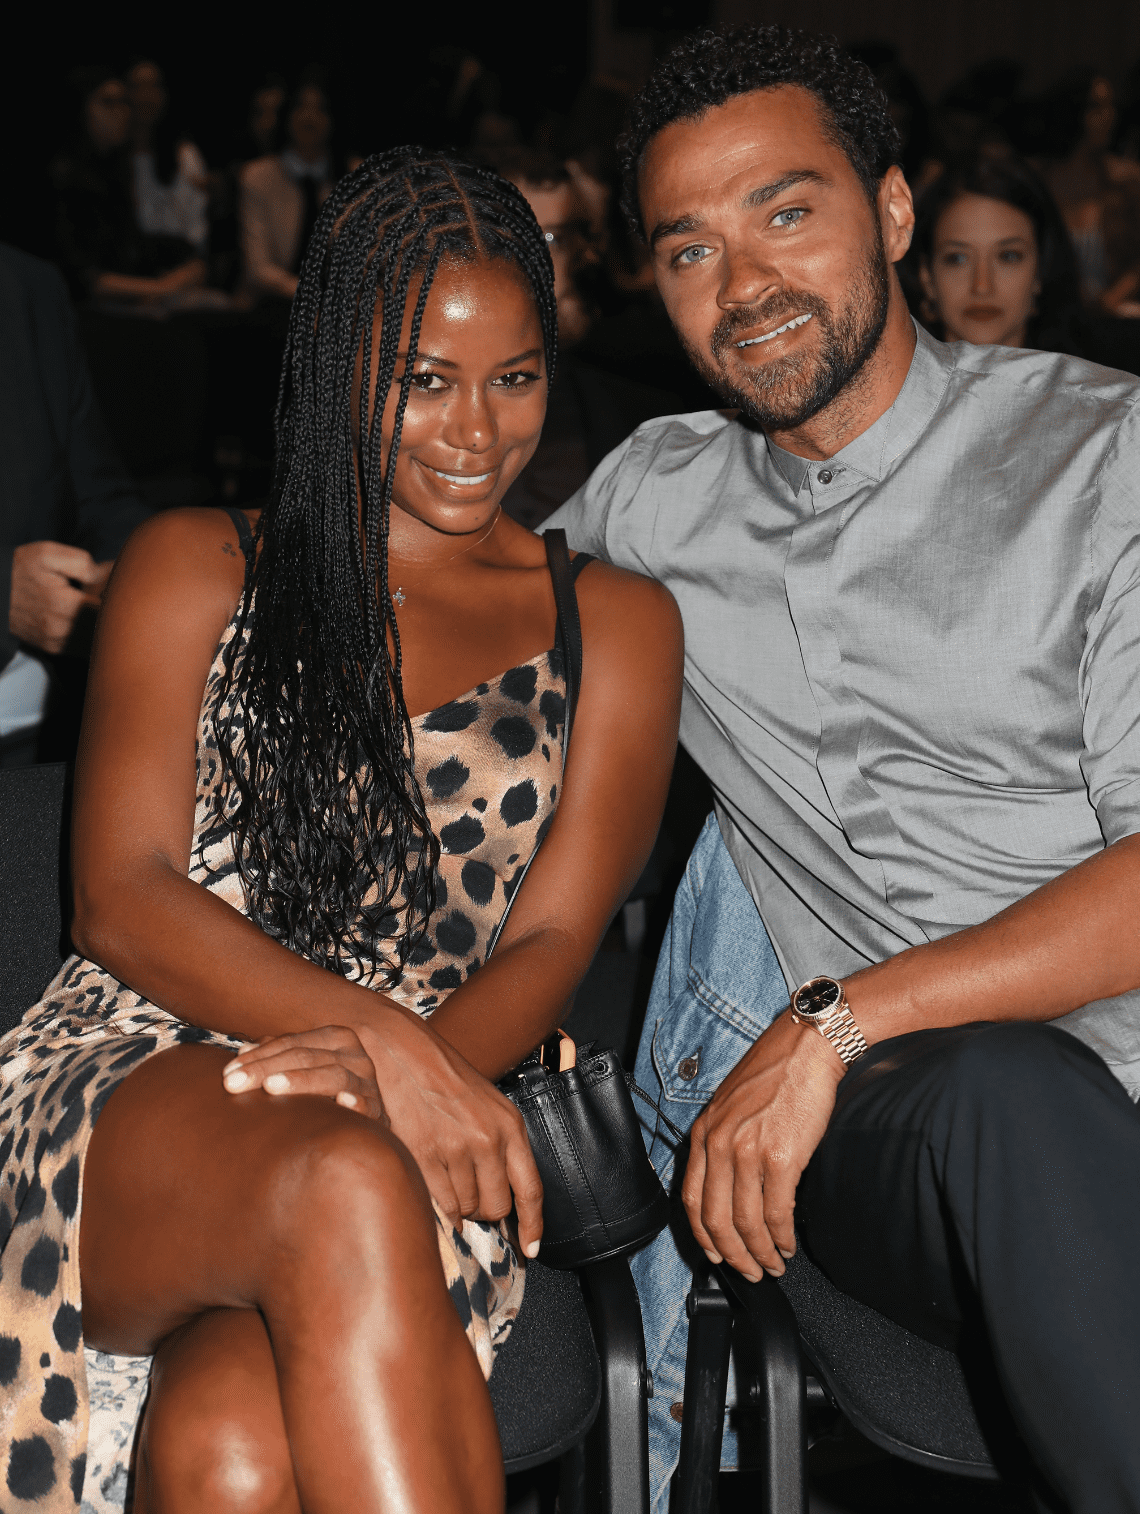 Taylour Paige and Jesse Williams attend the Filming Italy Sardegna Festival 2019 Day 2 at Forte Village Resort on June 14, 2019  | Photo: Getty Images